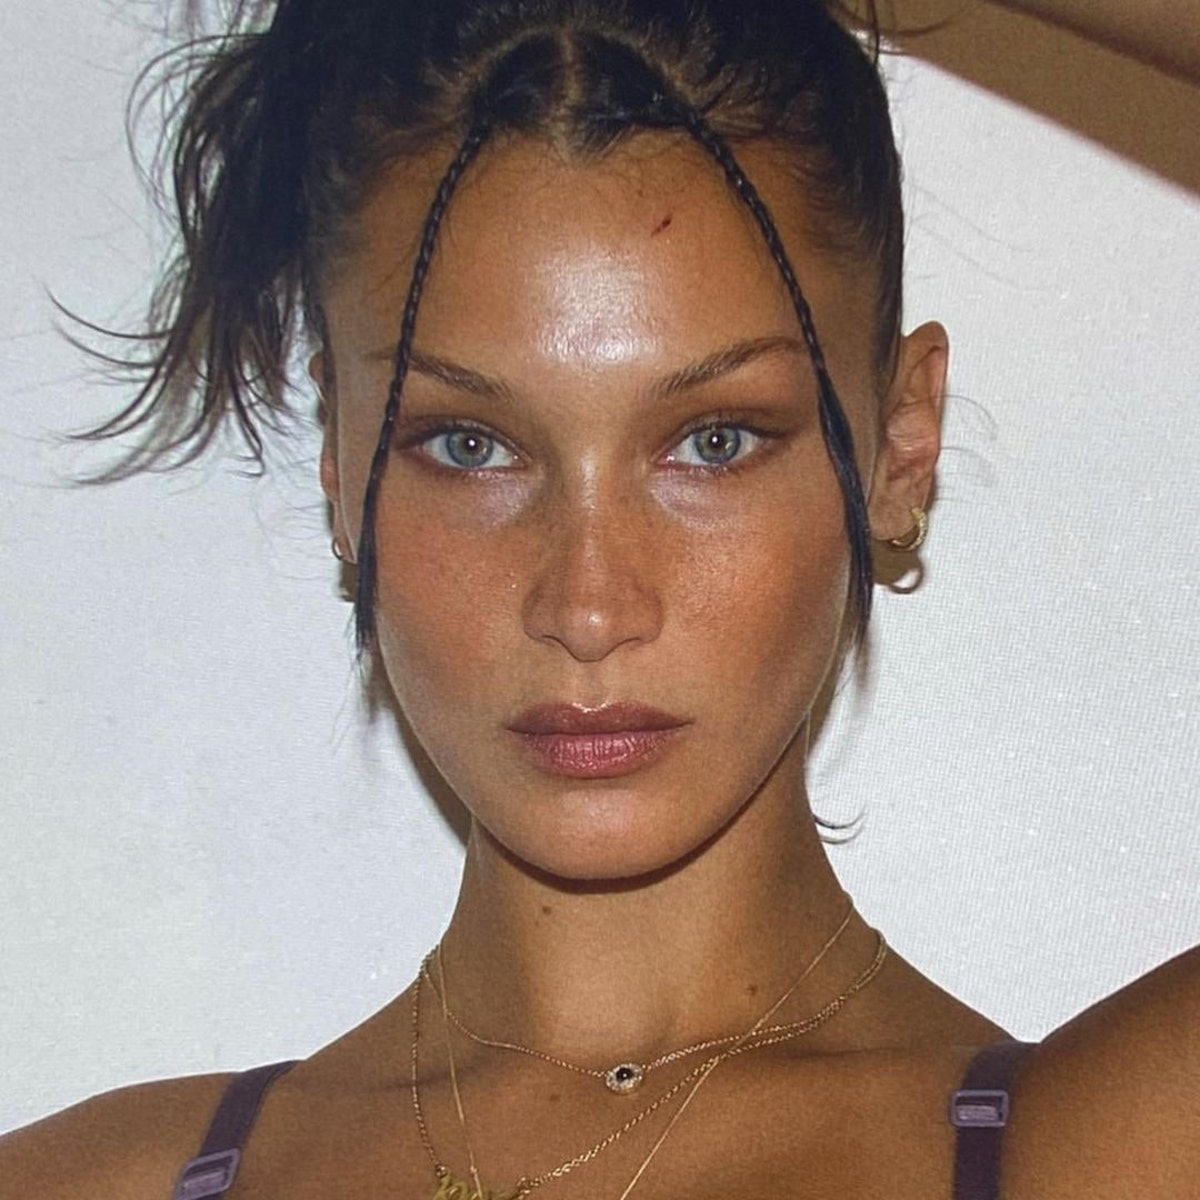 Braided tendrils are the early 2000s hairstyle taking over social media. Not convinced? Stars like M...